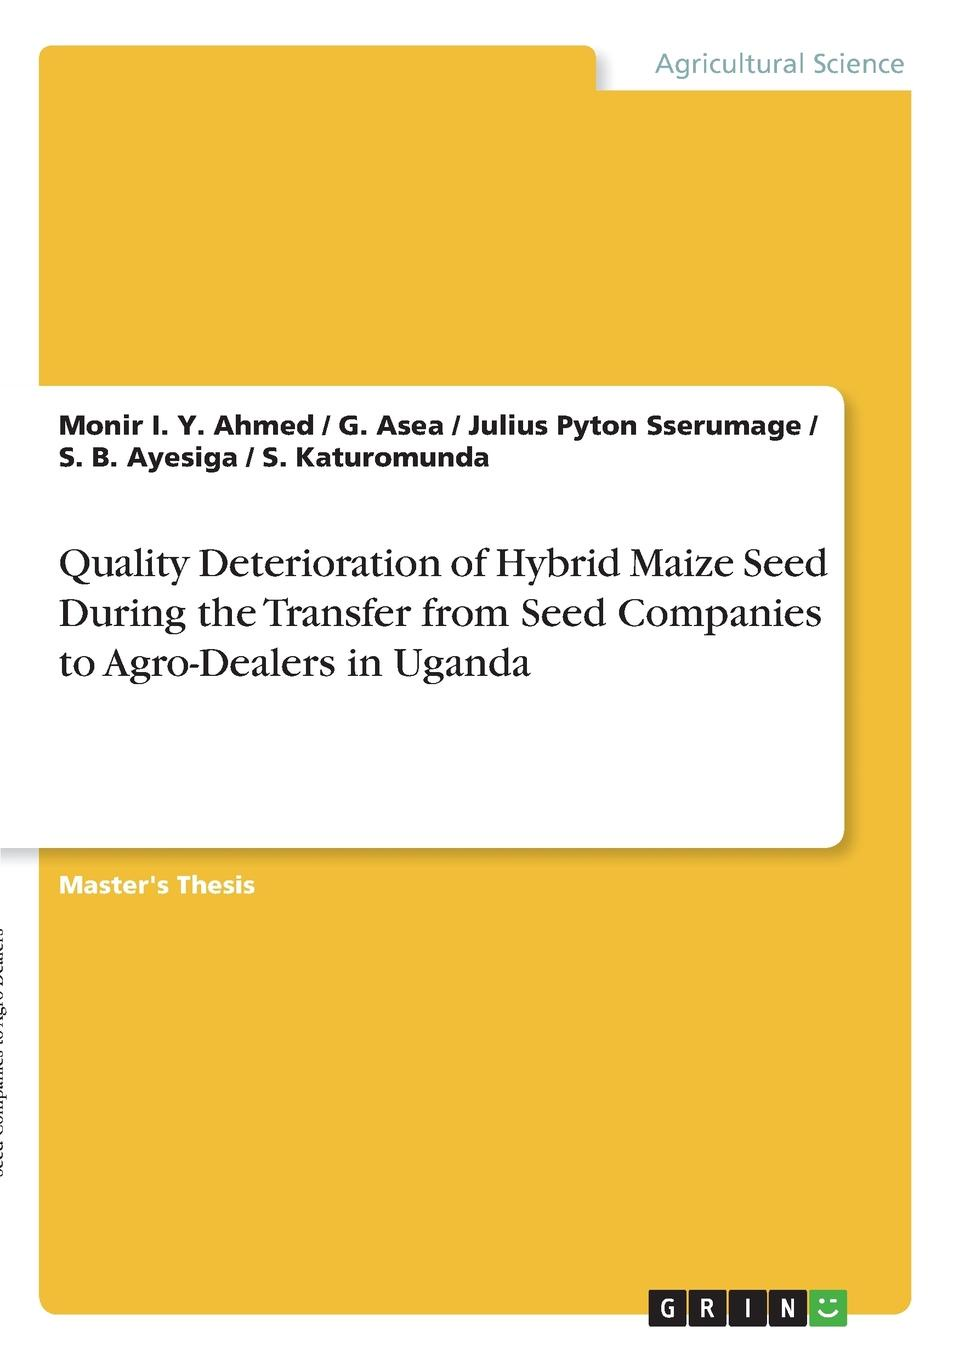 Monir I. Y. Ahmed, S. B. Ayesiga, Julius Pyton Sserumage Quality Deterioration of Hybrid Maize Seed During the Transfer from Seed Companies to Agro-Dealers in Uganda diriba fufa quality analysis of farmers chickpea seed sources in ethiopia